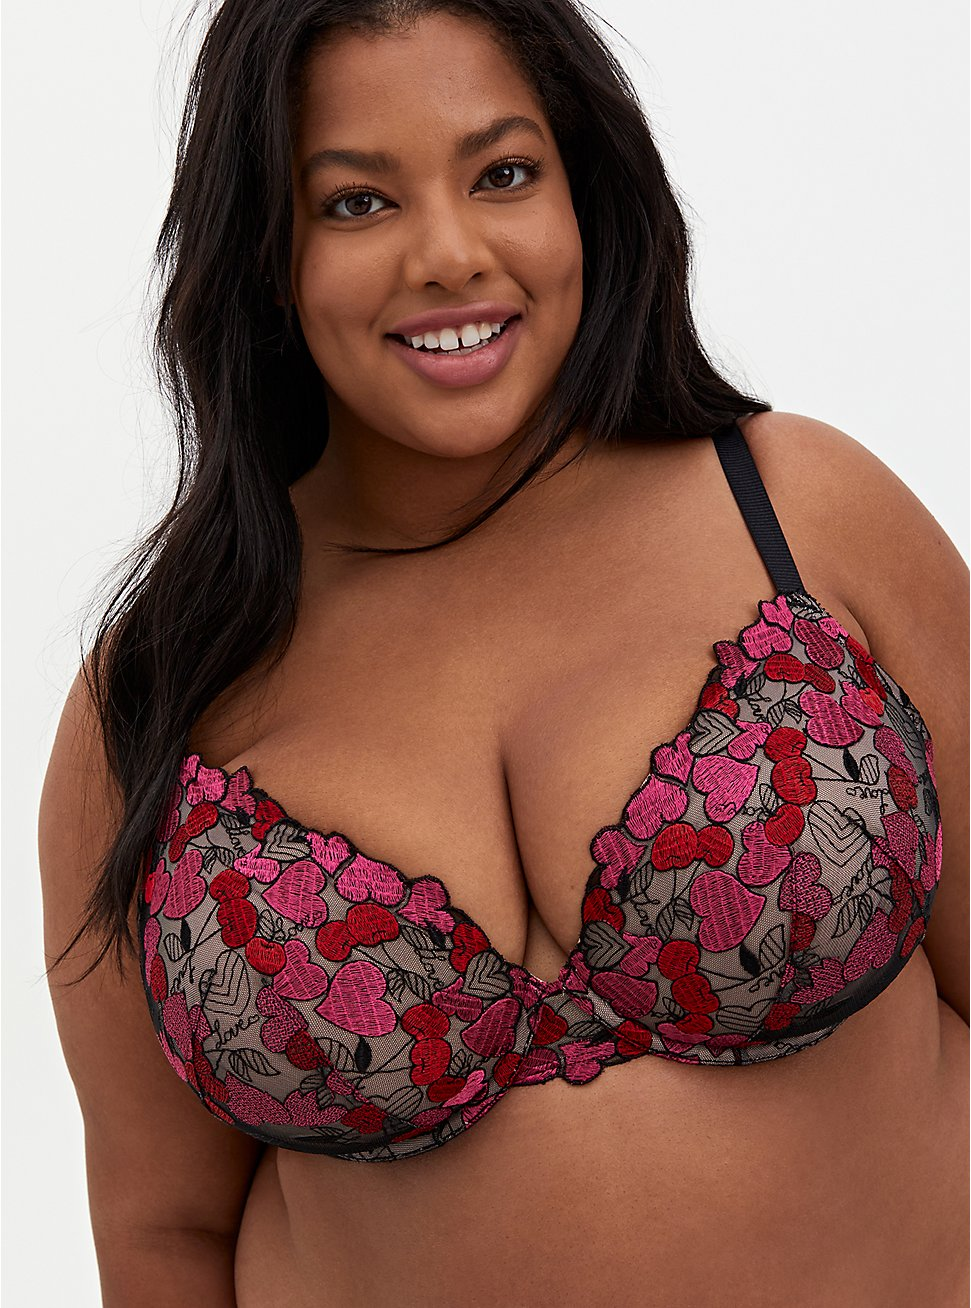 Black Mesh & Red Cherry Heart Embroidered Push-Up Plunge Bra, MULTI COLOR, hi-res